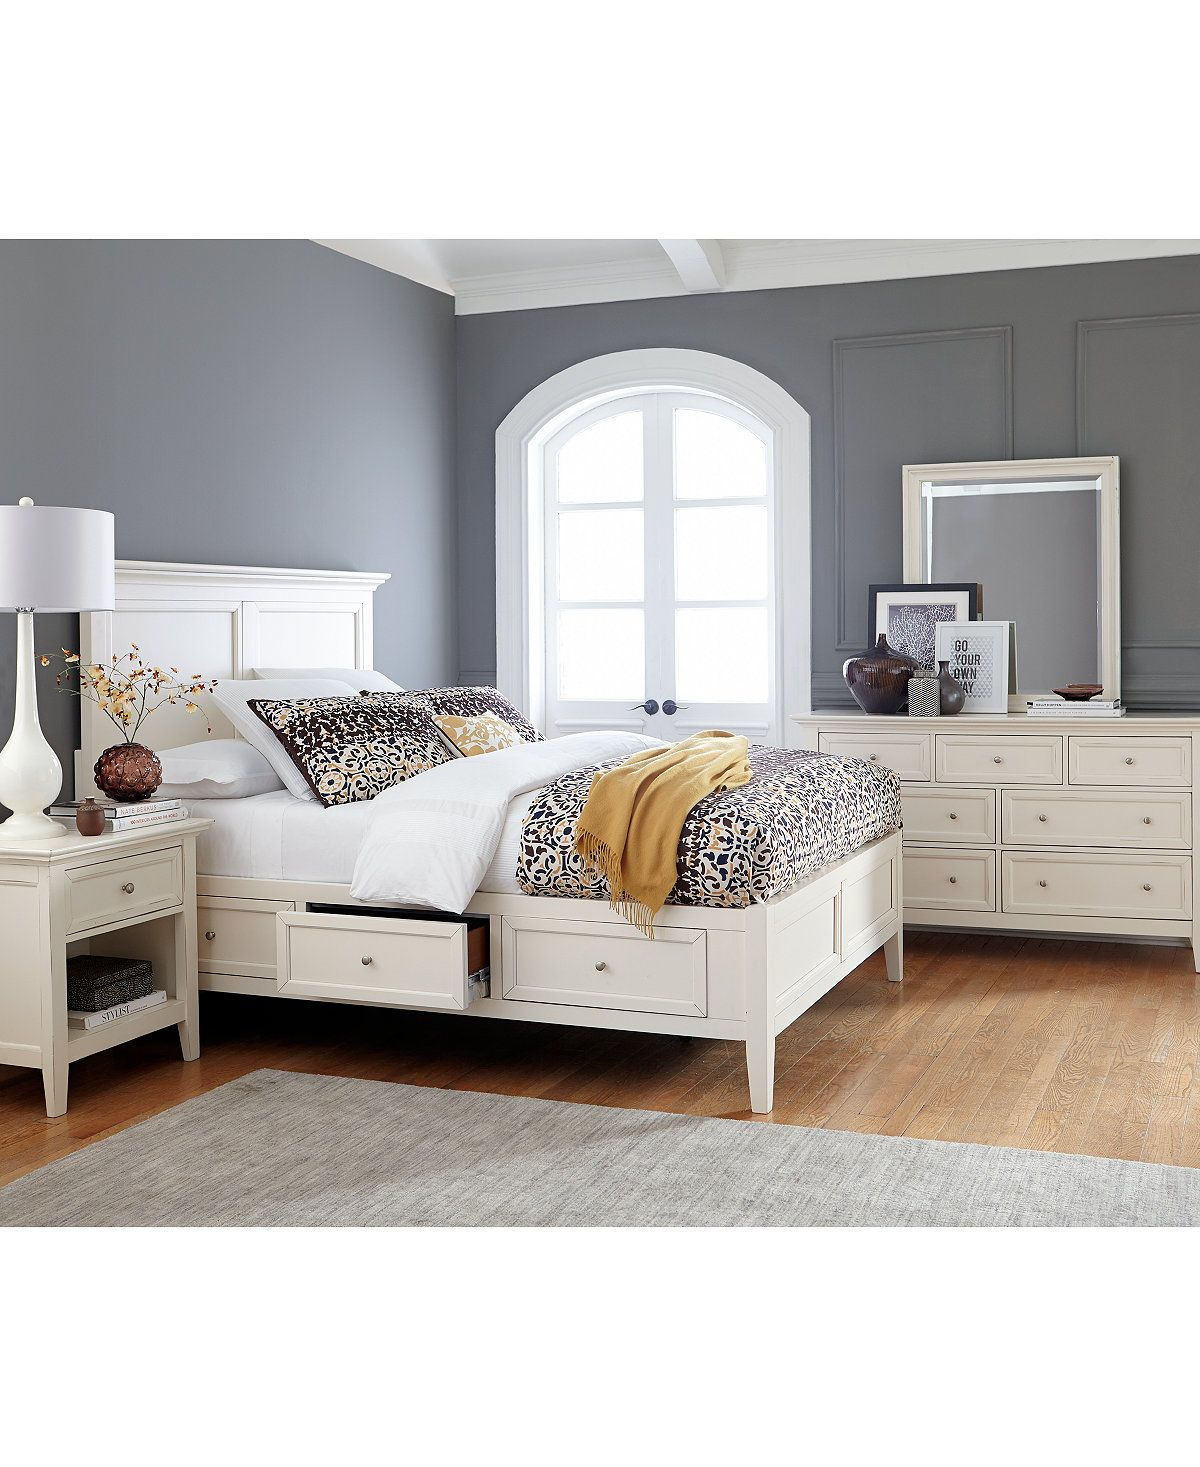 Best Furniture Sanibel Storage Platform Bedroom Furniture 640 x 480